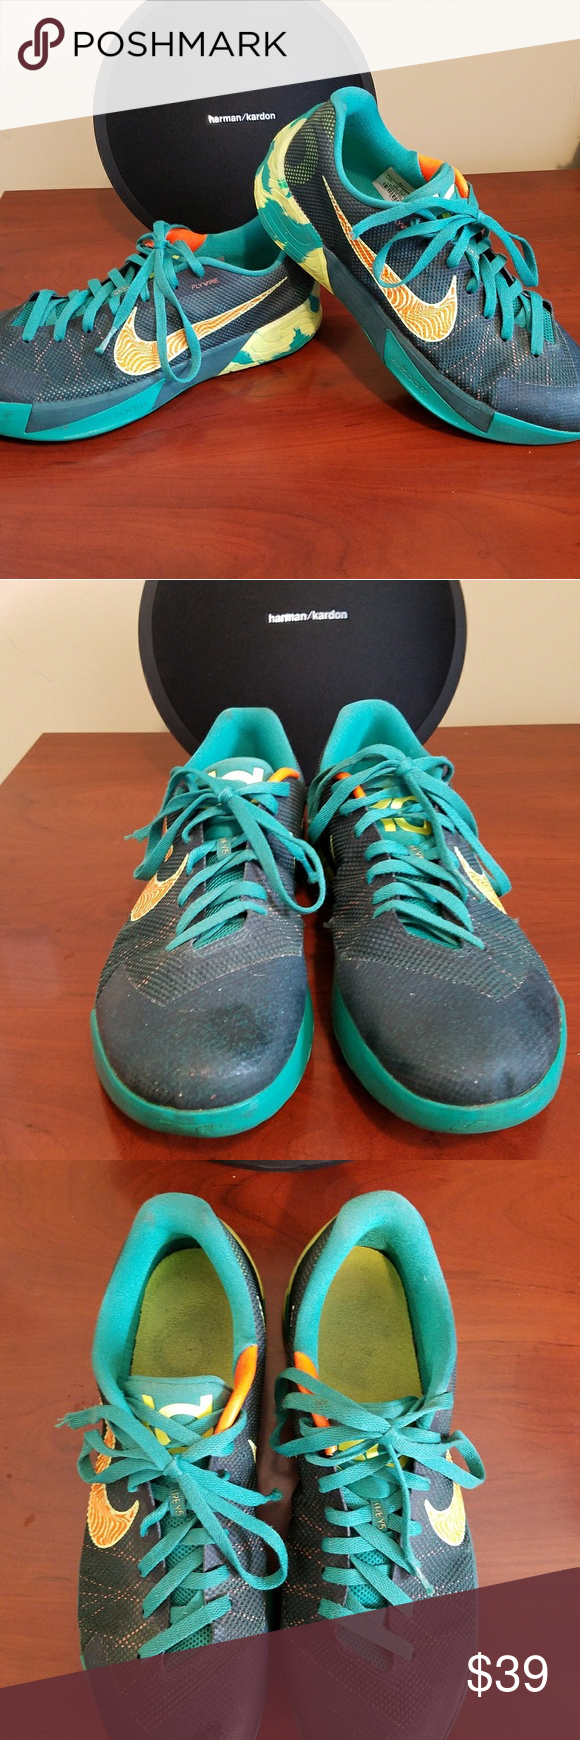 new style 641f5 3b017 Nike KD Trey 5 ll 13 s These are used, but good condition, Nike Kevin  Durant Trey 5 2 s, with some wear. Please see pics Nike Shoes Athletic Shoes